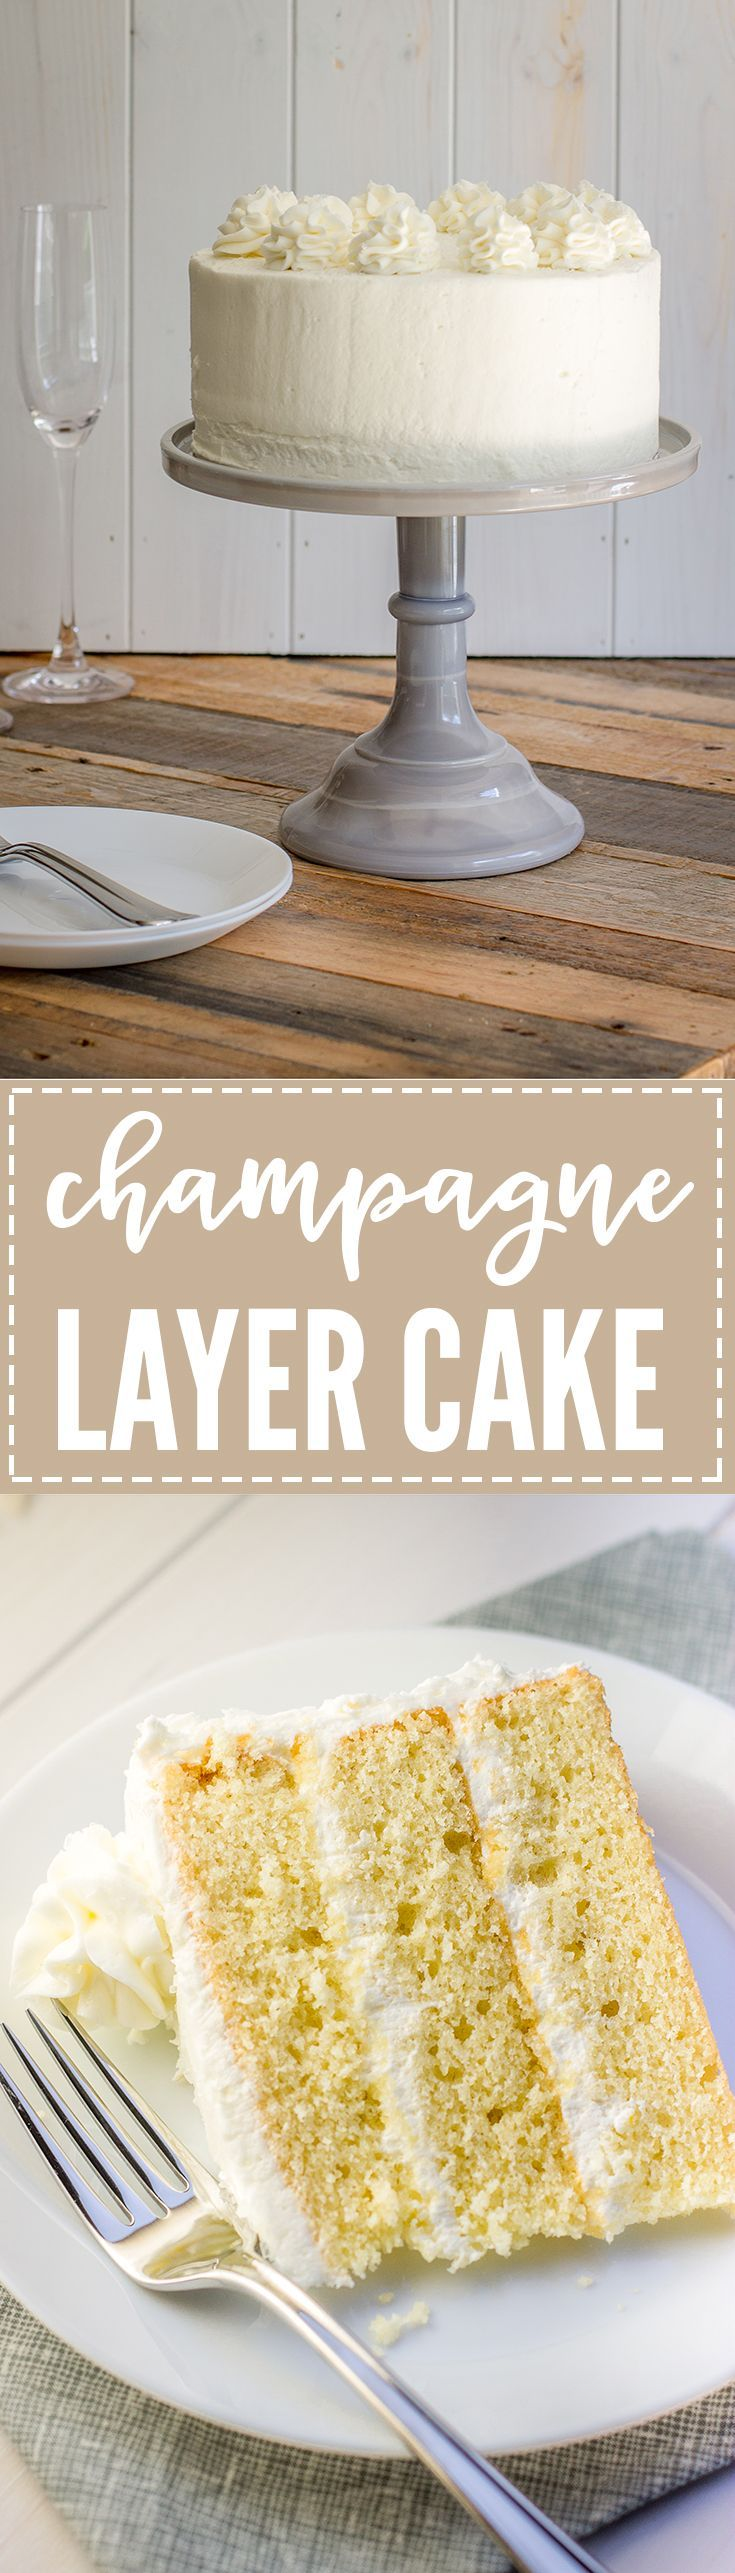 Champagne layer cake | Tender, sweet champagne-infused cake with champagne buttercream frosting, perfect for any celebration!